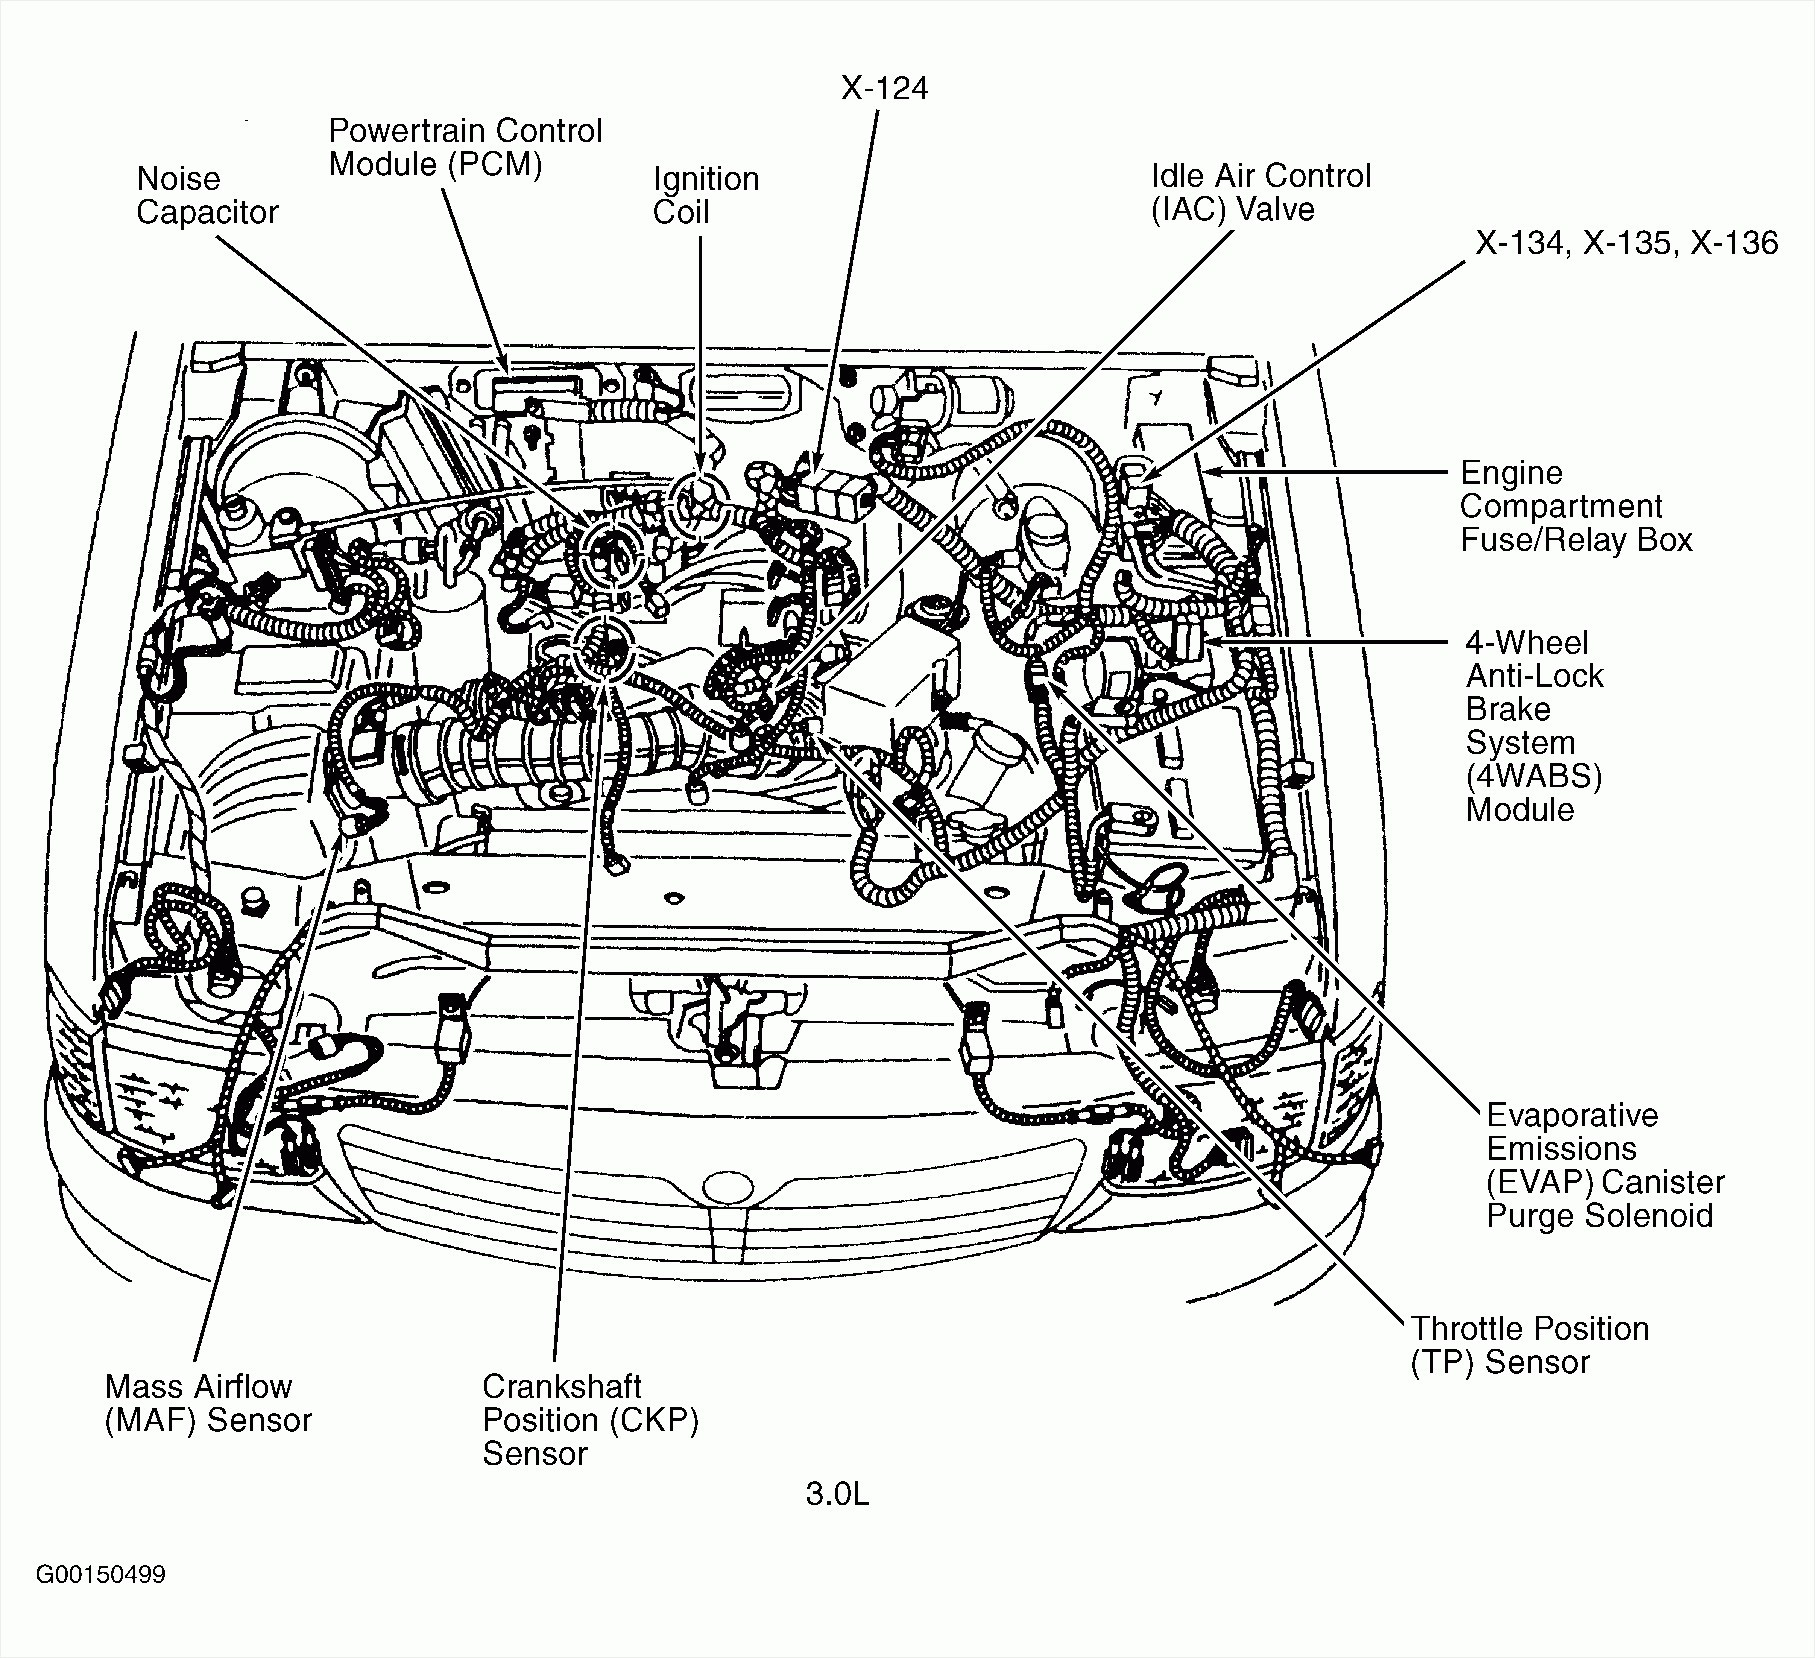 hight resolution of 2006 ford 500 engine diagram wiring diagrams update2005 ford 500 engine diagram wiring diagrams update ford